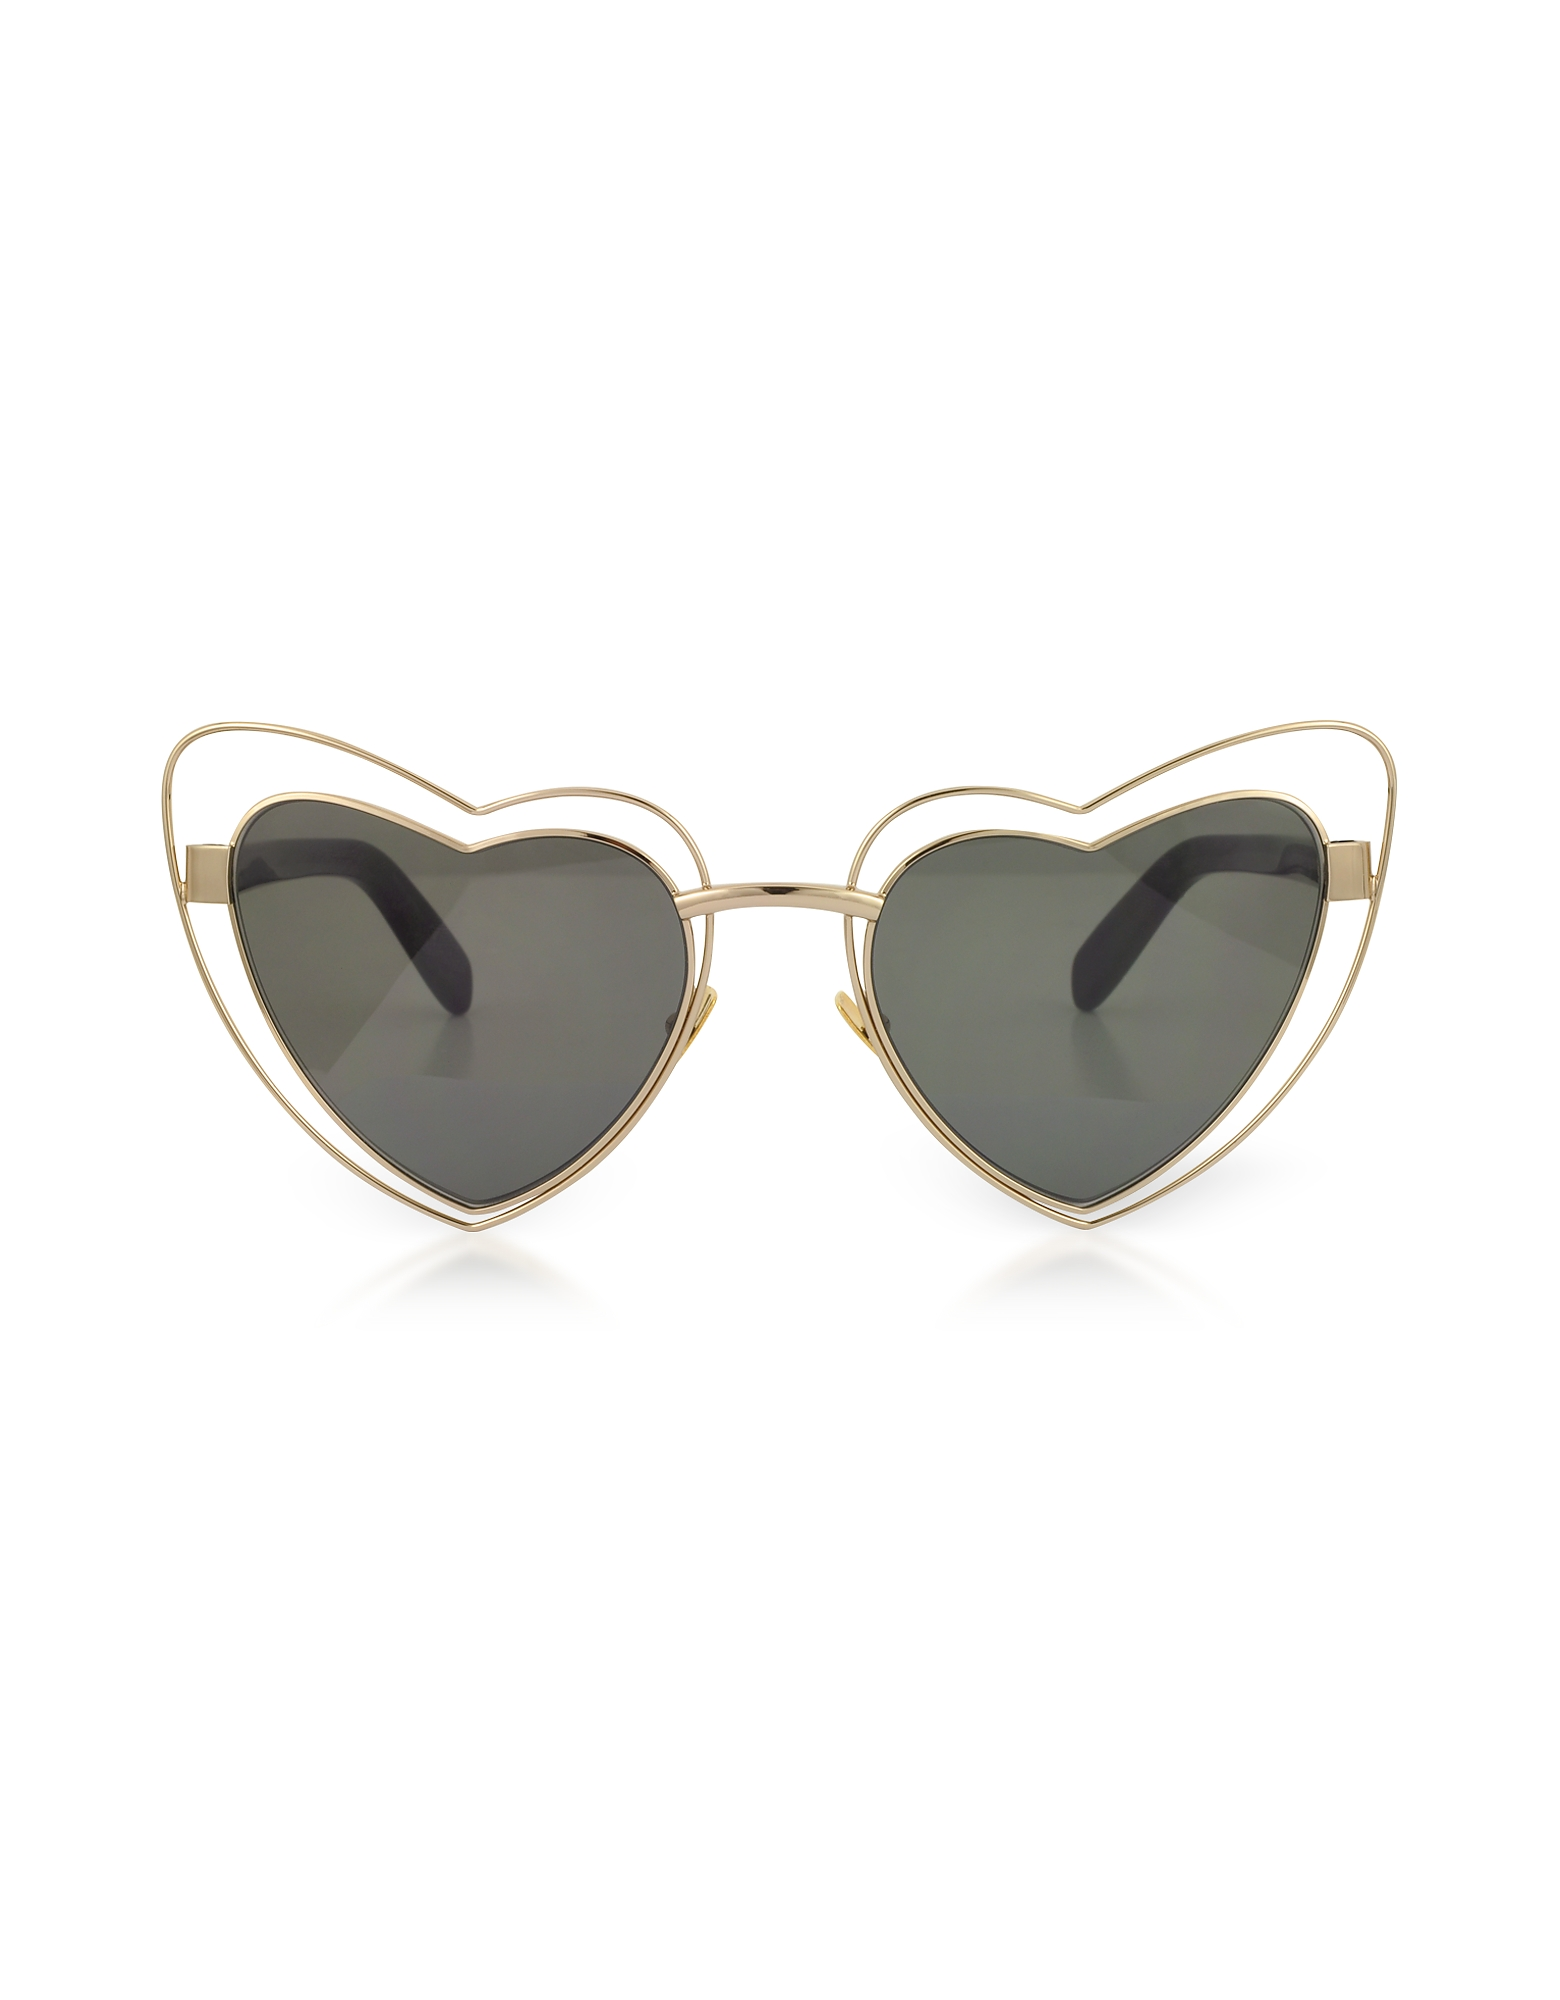 Saint Laurent Sunglasses, SL 197 Louluo Heart Metal Women's Sunglasses